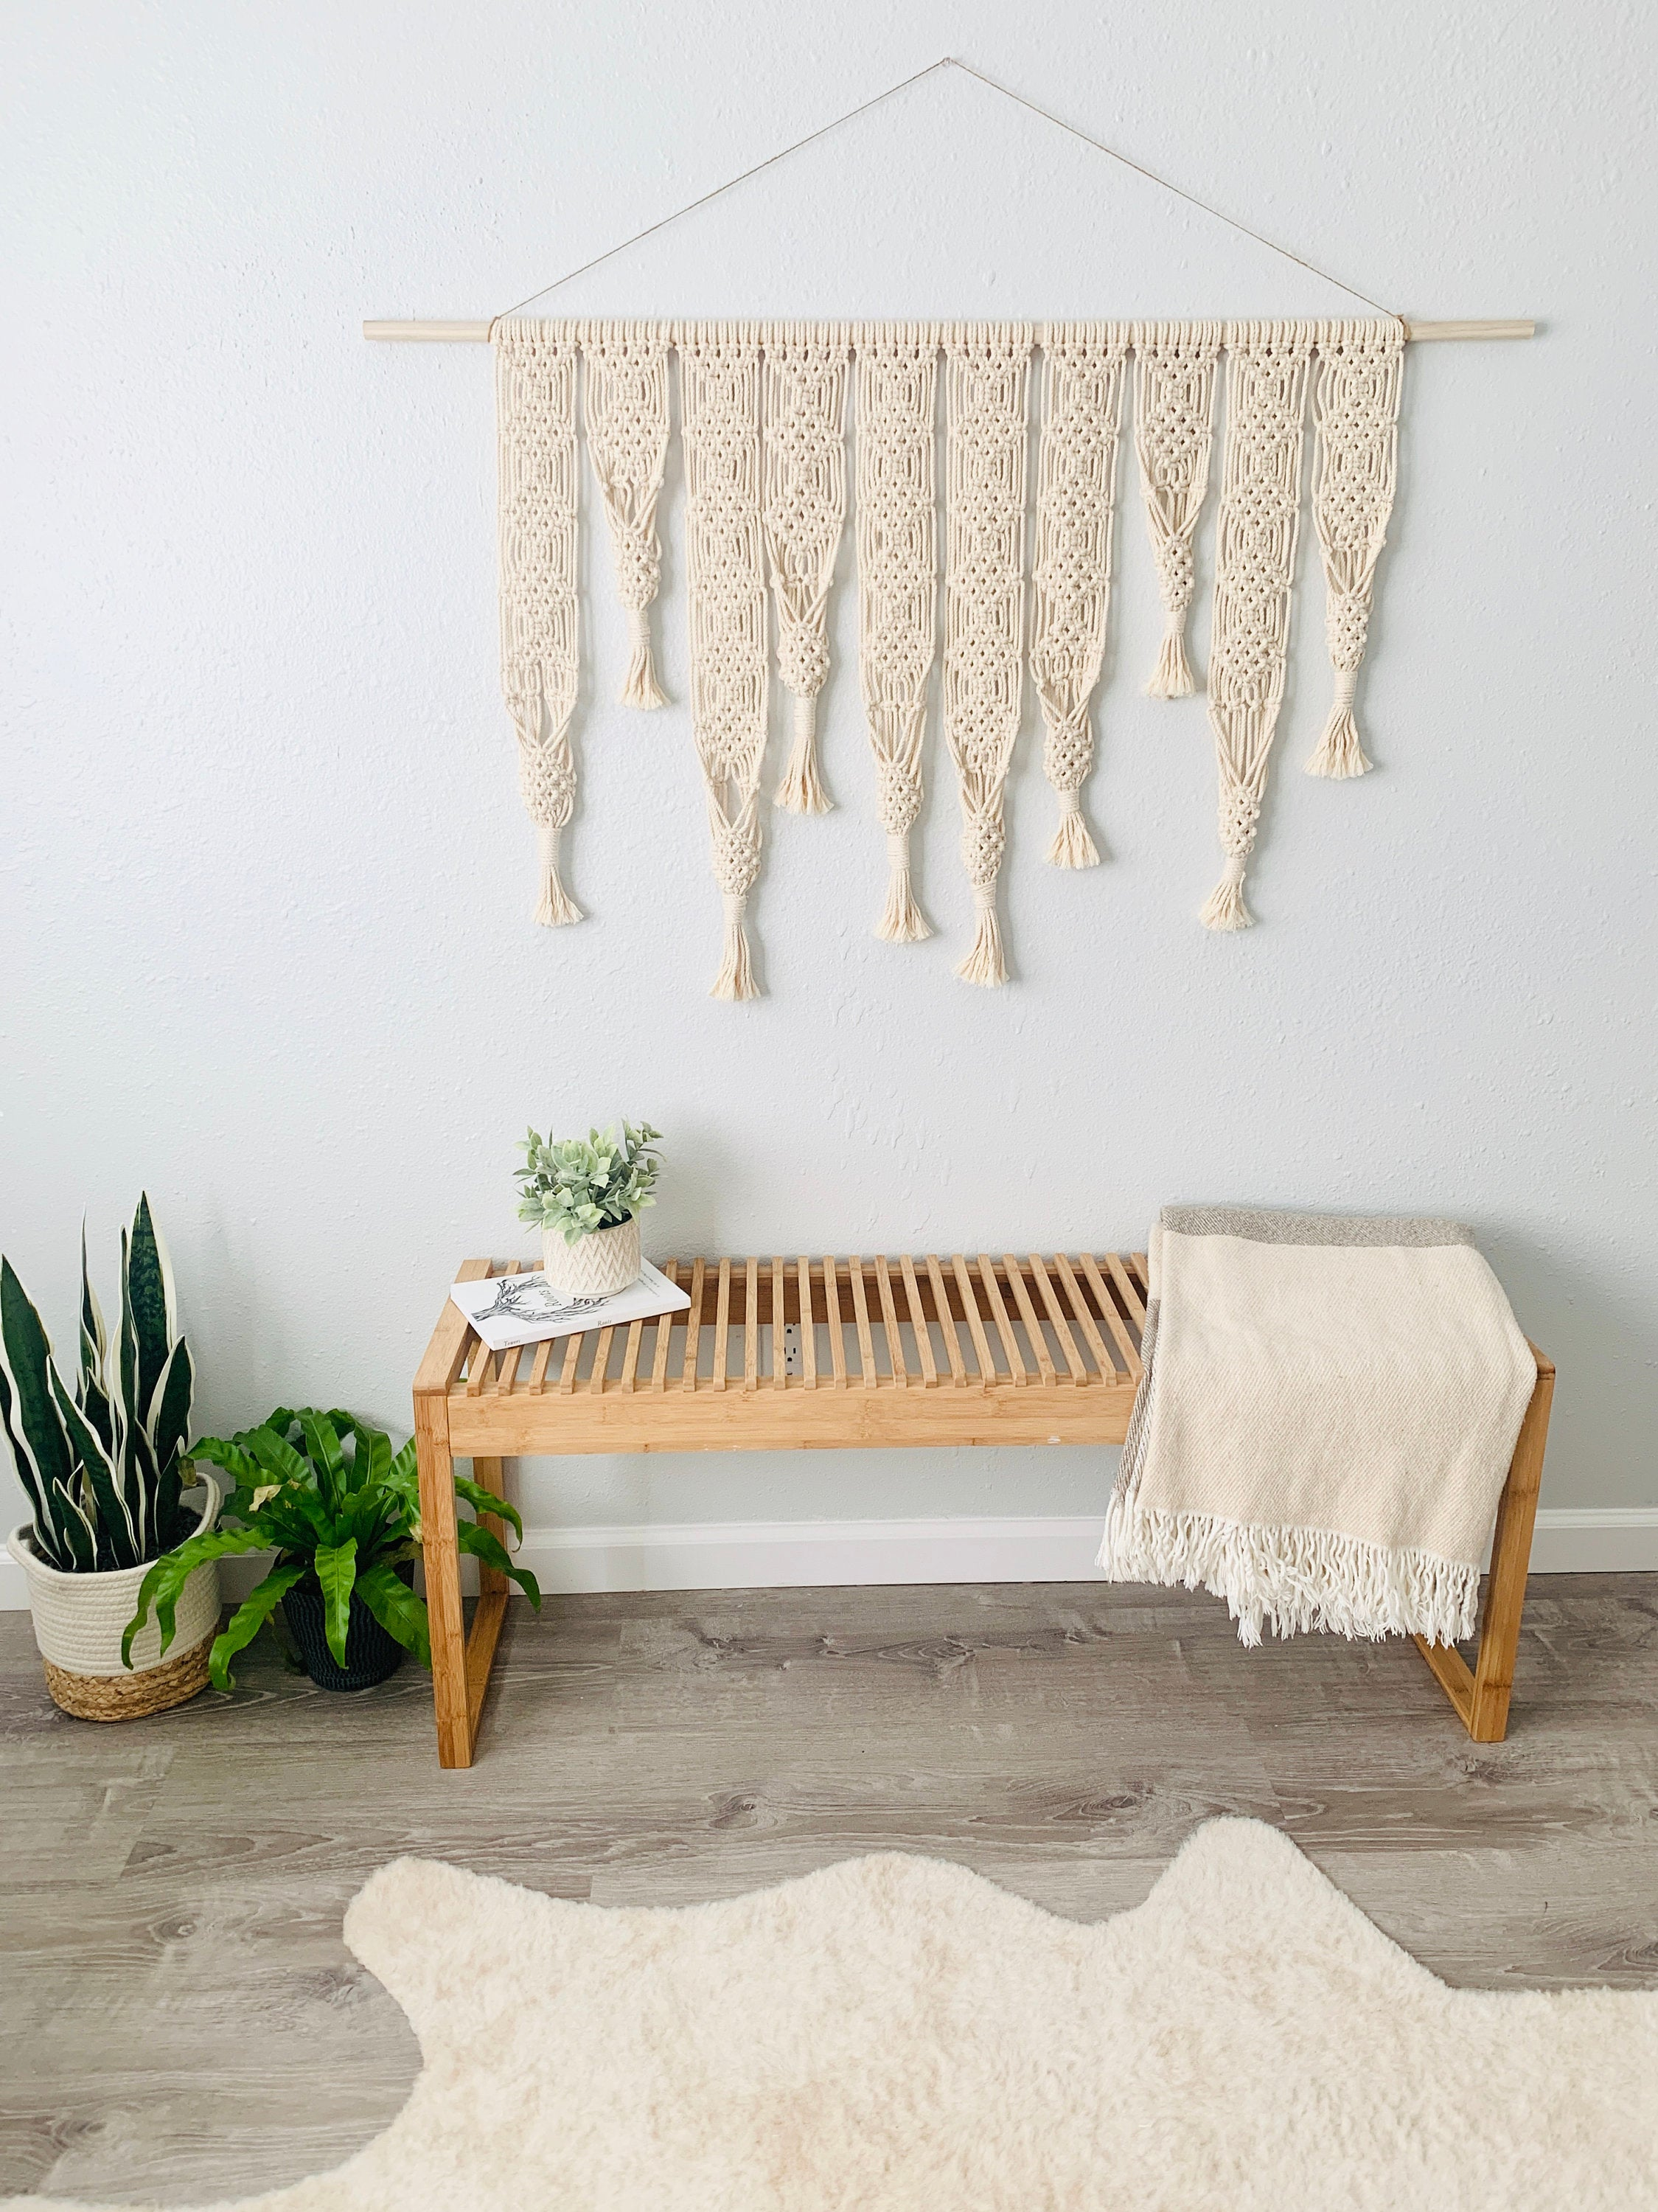 Wide Macrame Wall Hanging with Air-plant Hangers, Headboard Macrame Plant Hanger, Bohemian Fiber Art, Large Macrame Wall Art